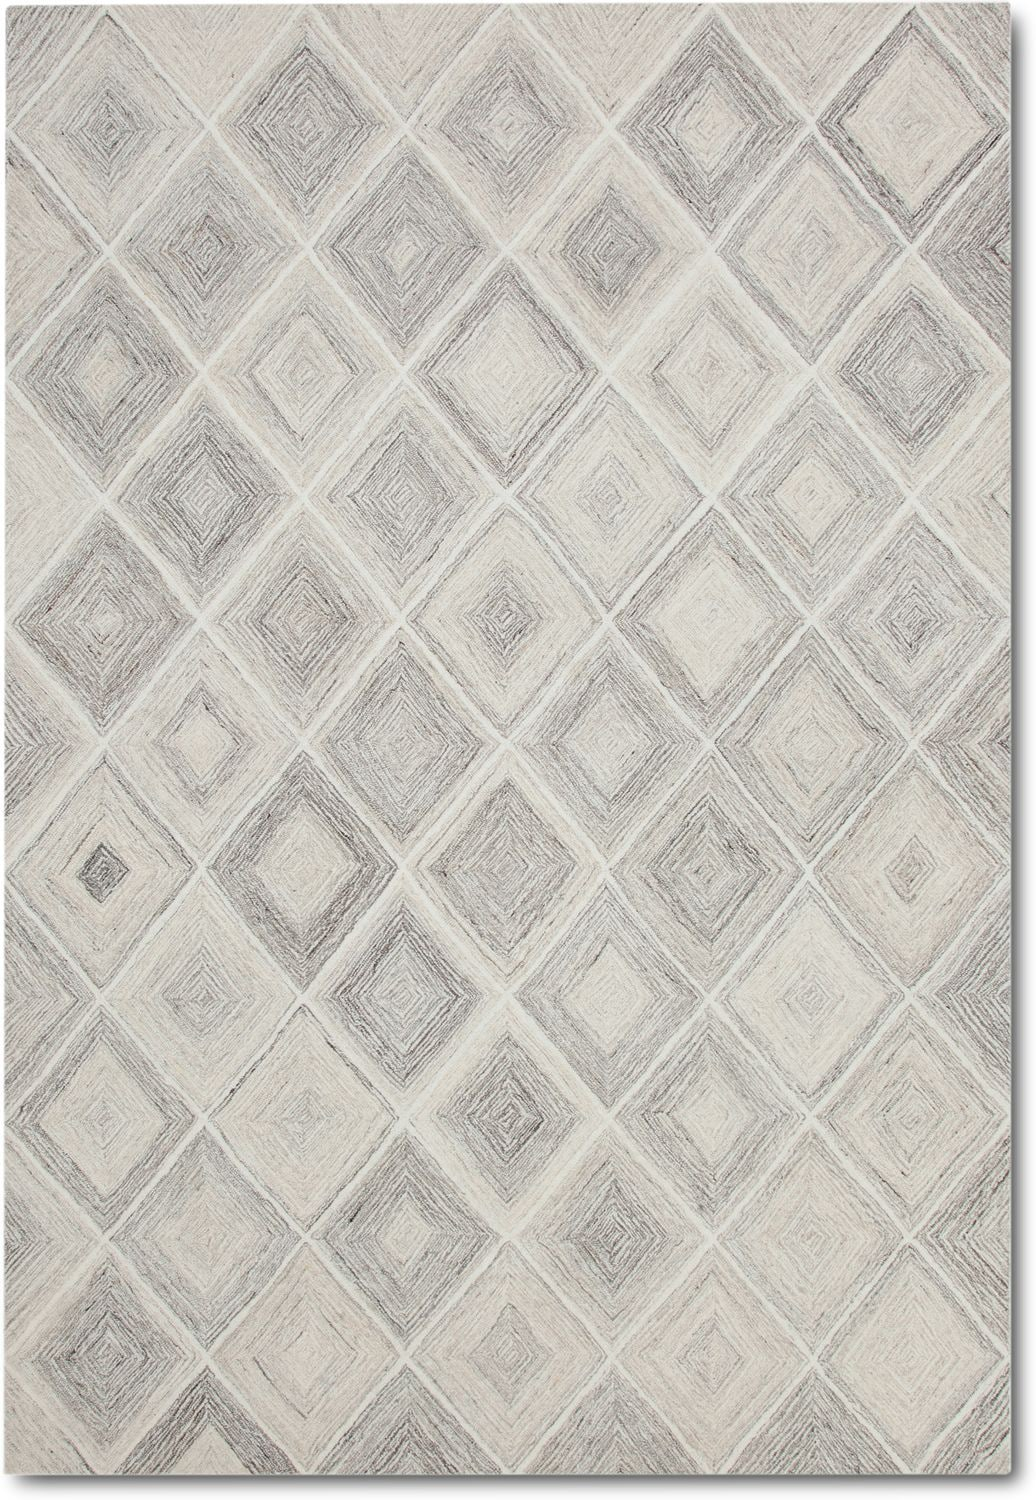 Rugs - Everest Area Rug - Ivory and Gray